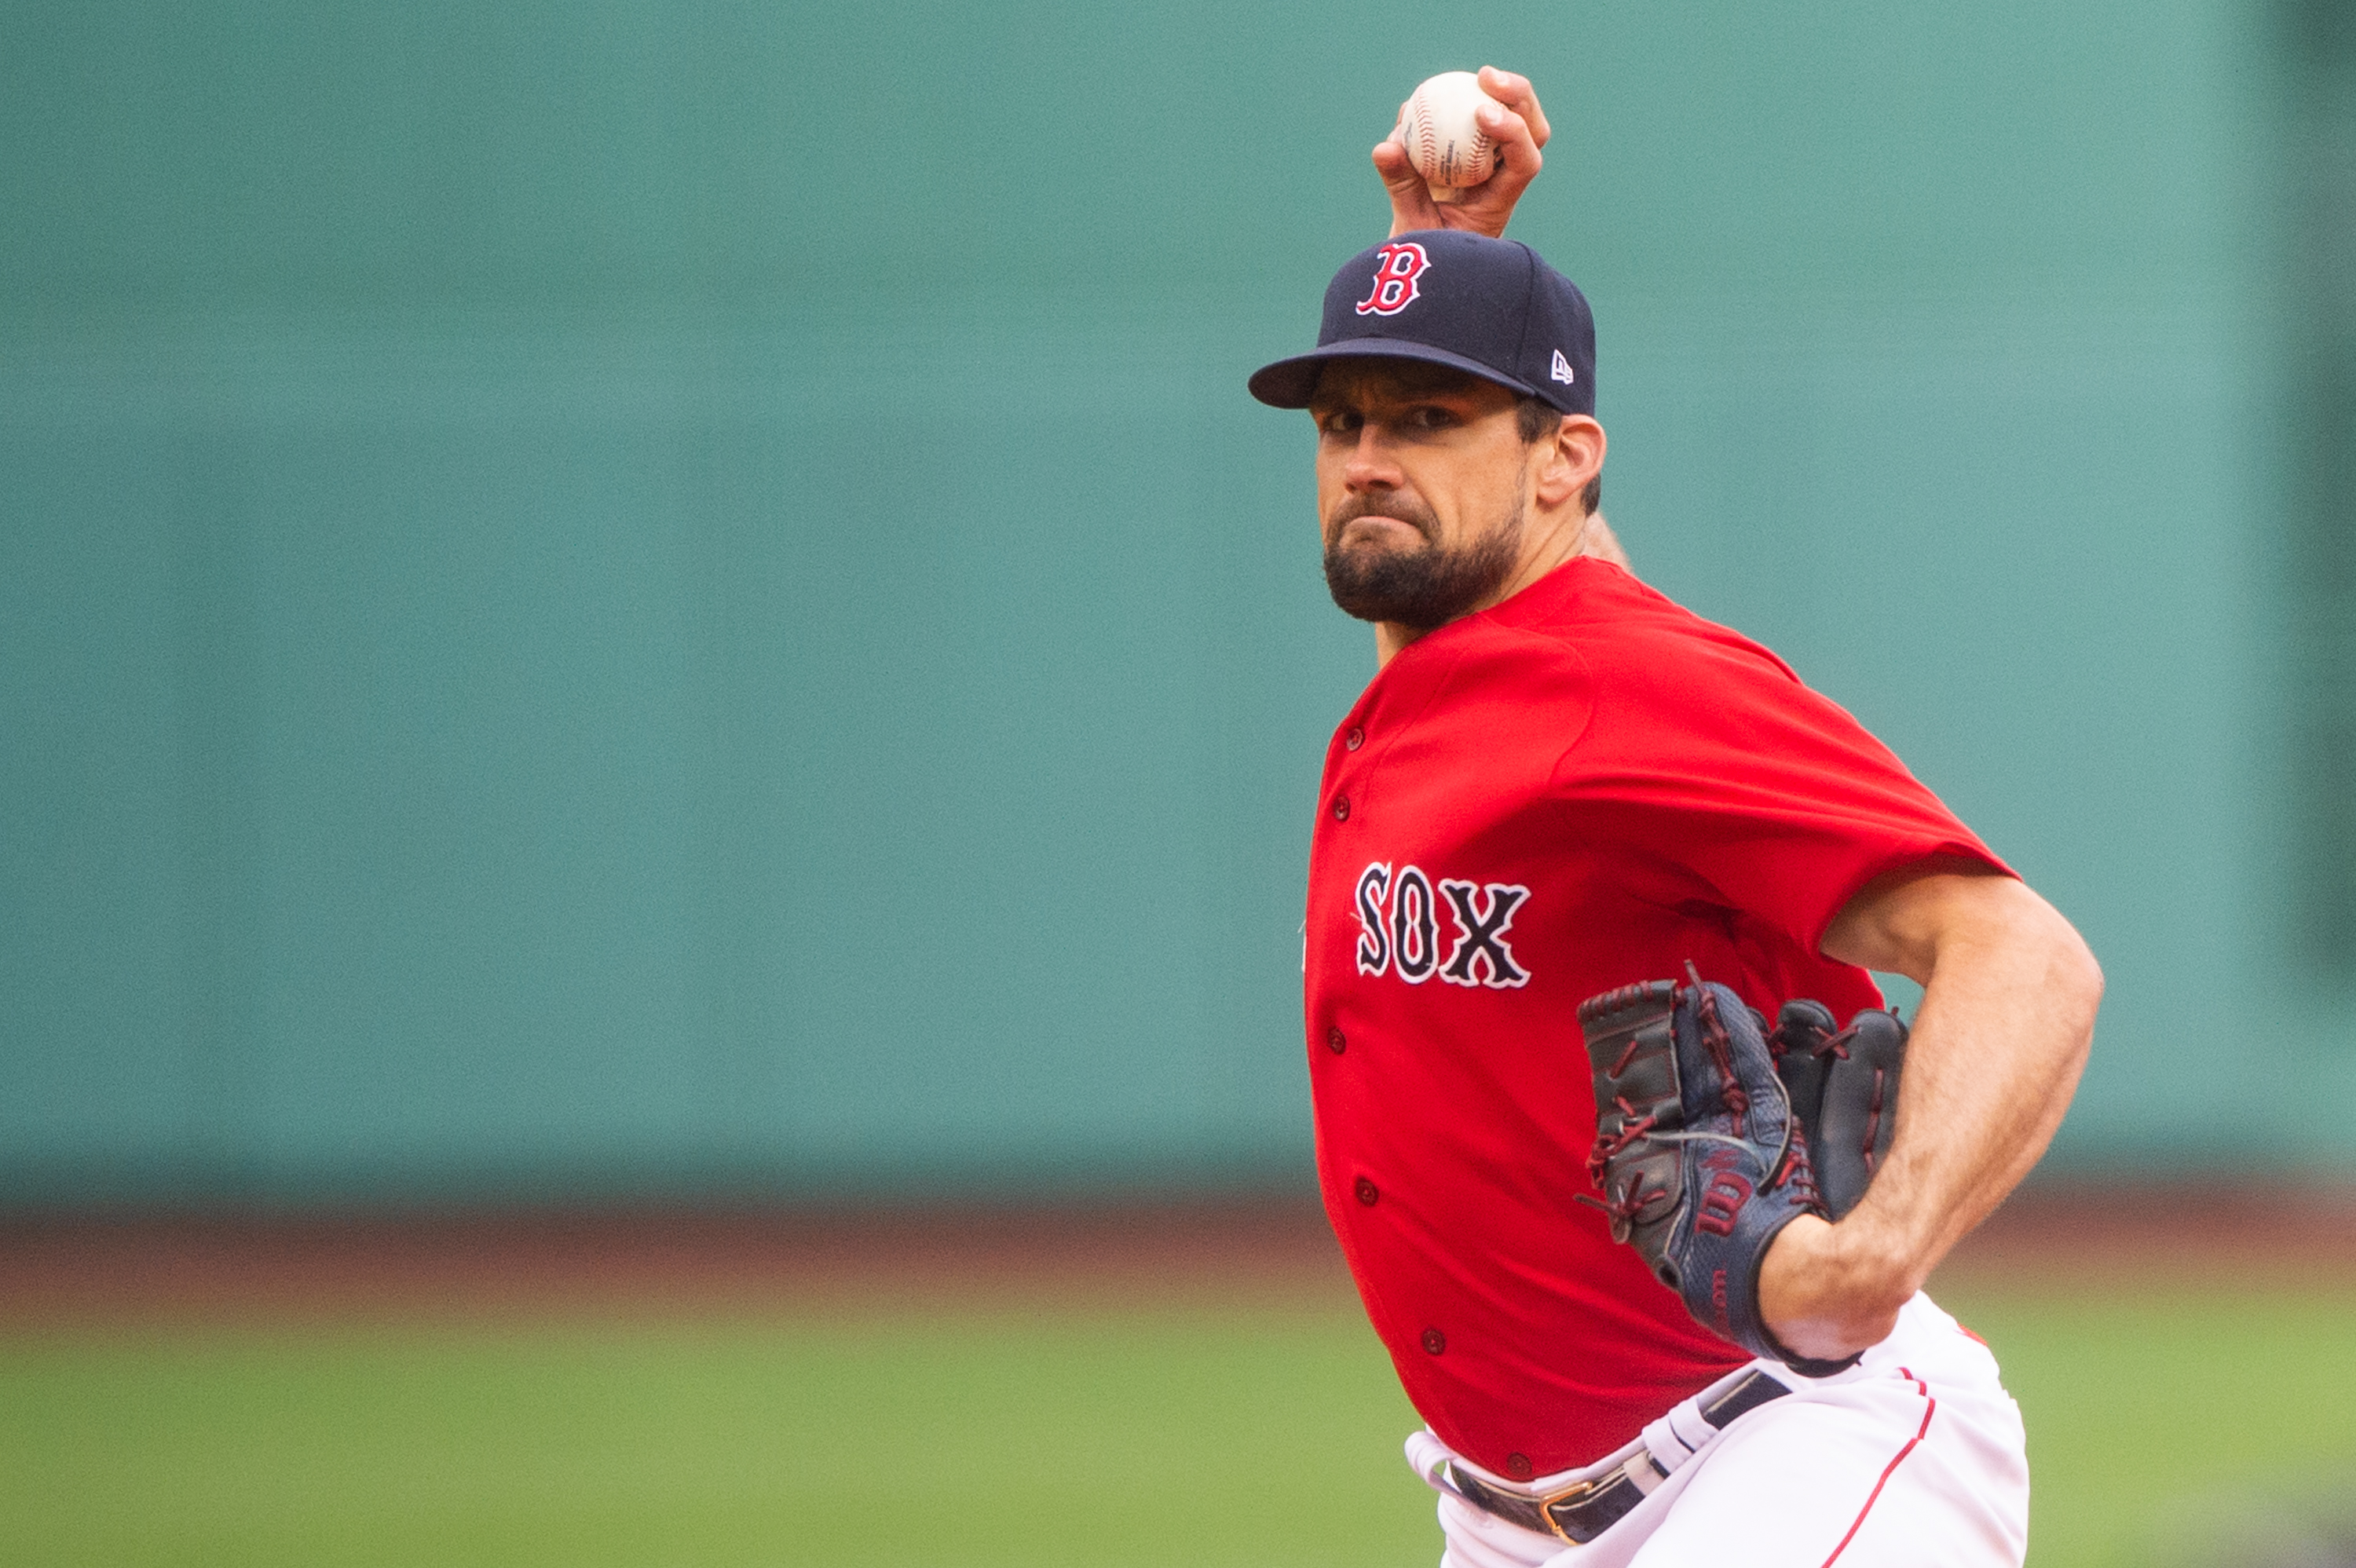 Nathan Eovaldi #17 of the Boston Red Sox pitches in the first inning against the Miami Marlins at Fenway Park on May 29, 2021 in Boston, Massachusetts.